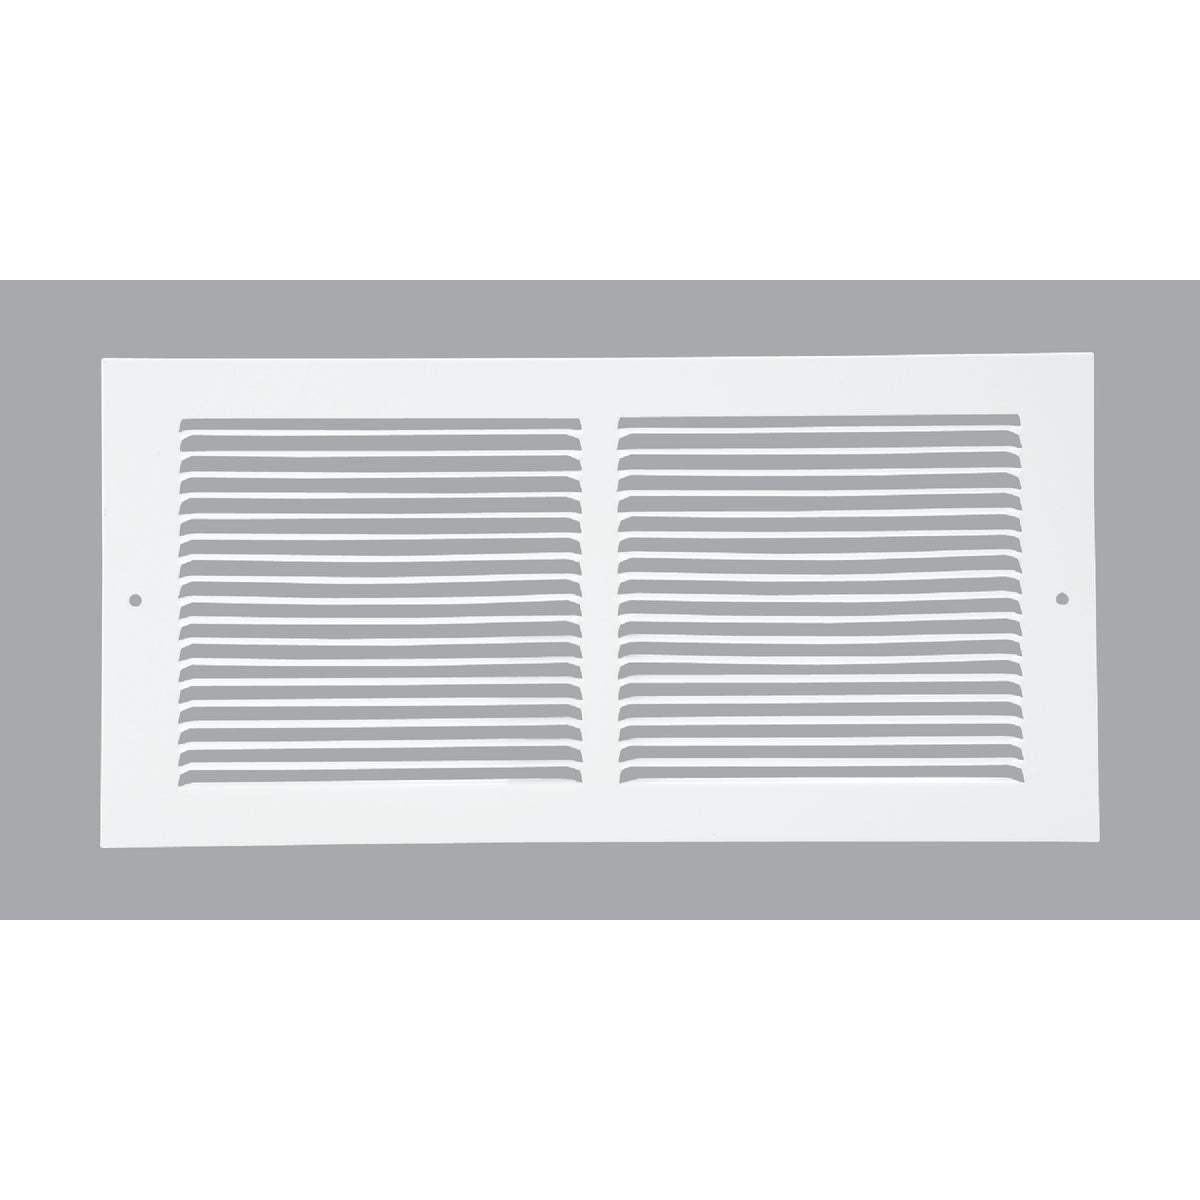 6X14WH RETURN AIR GRILLE - BBGT1406WH by Do it Best